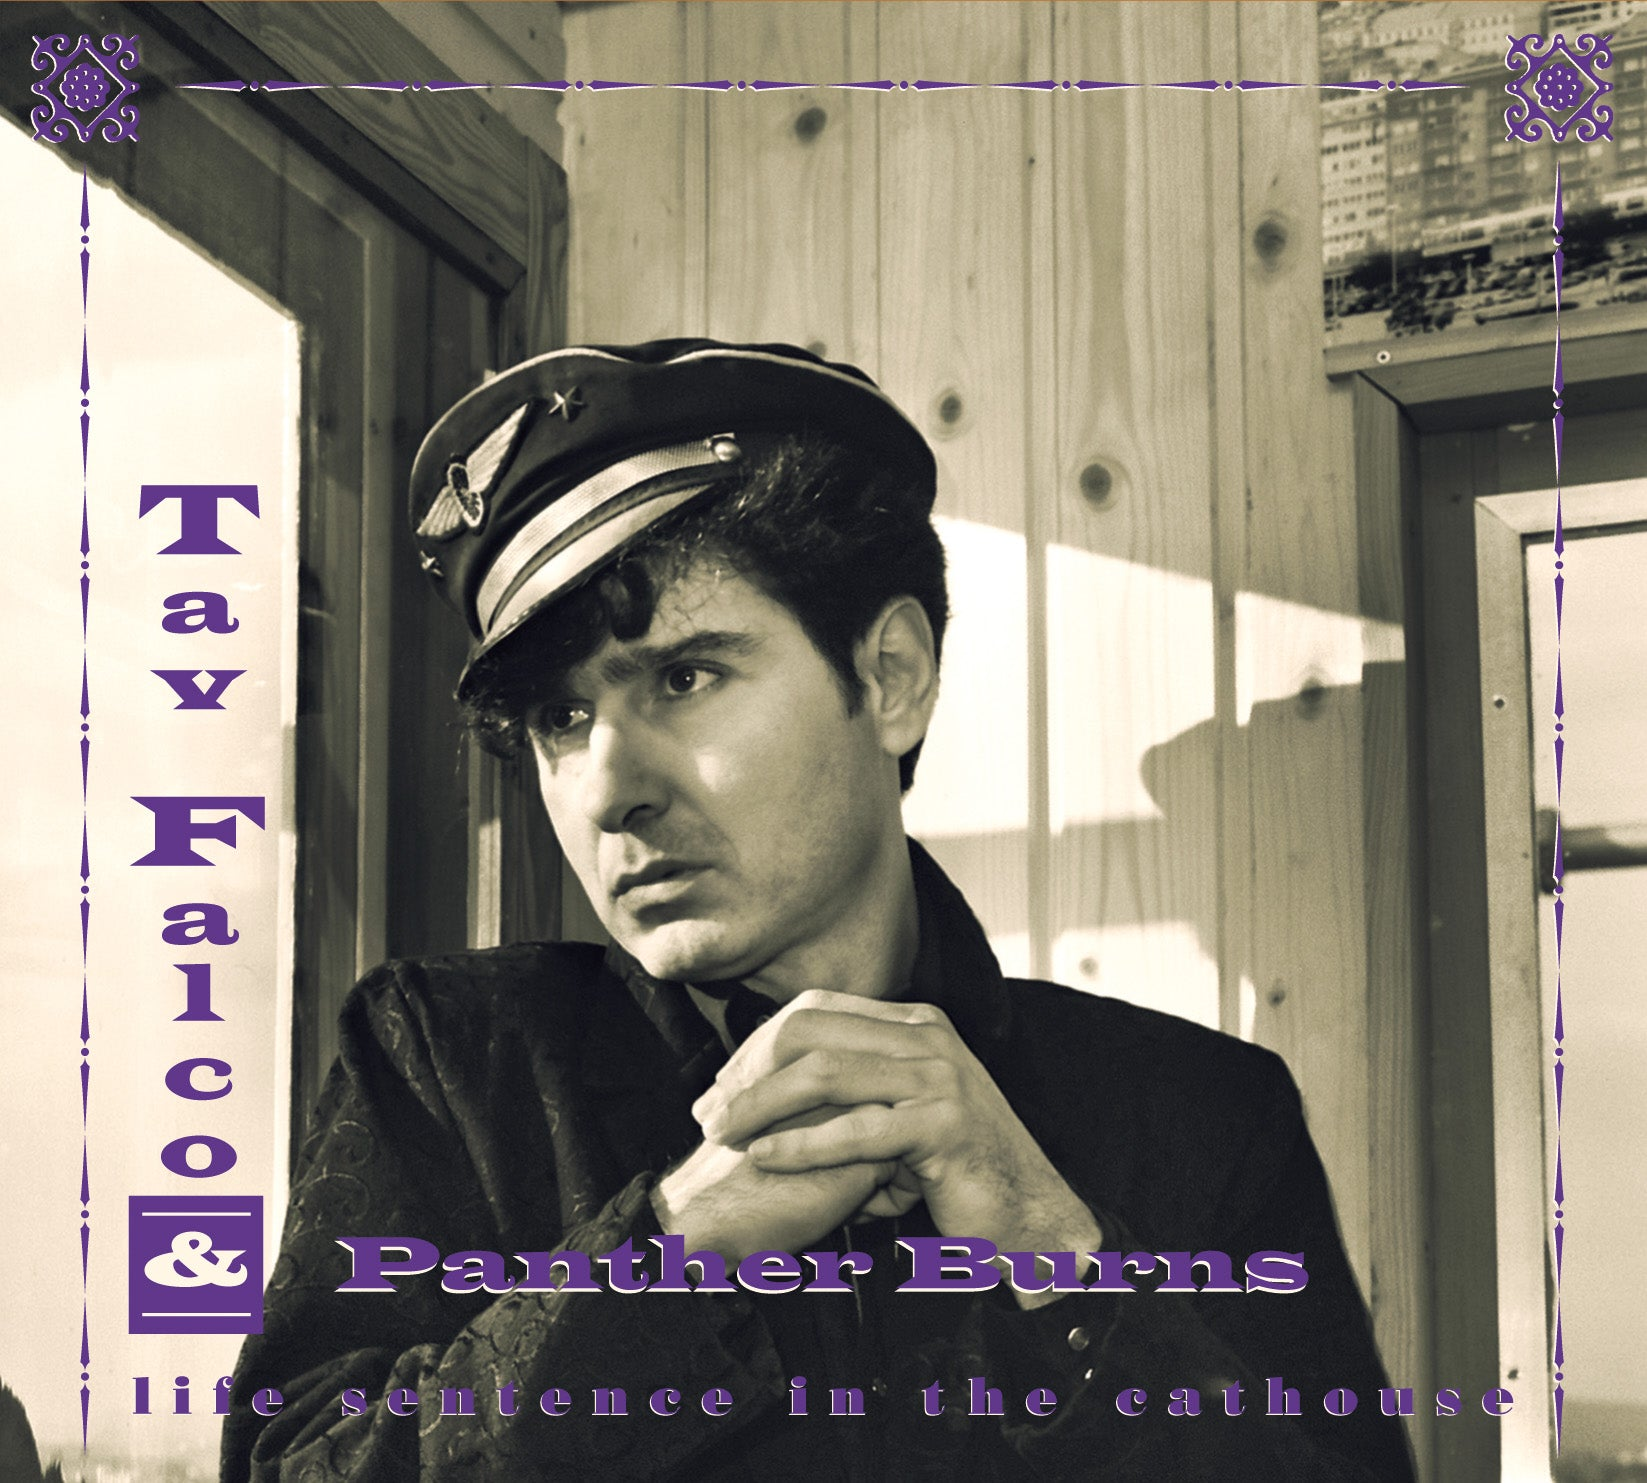 Tav Falco & Panther Burns - Life Sentence in the Cathouse + Live in Vienna